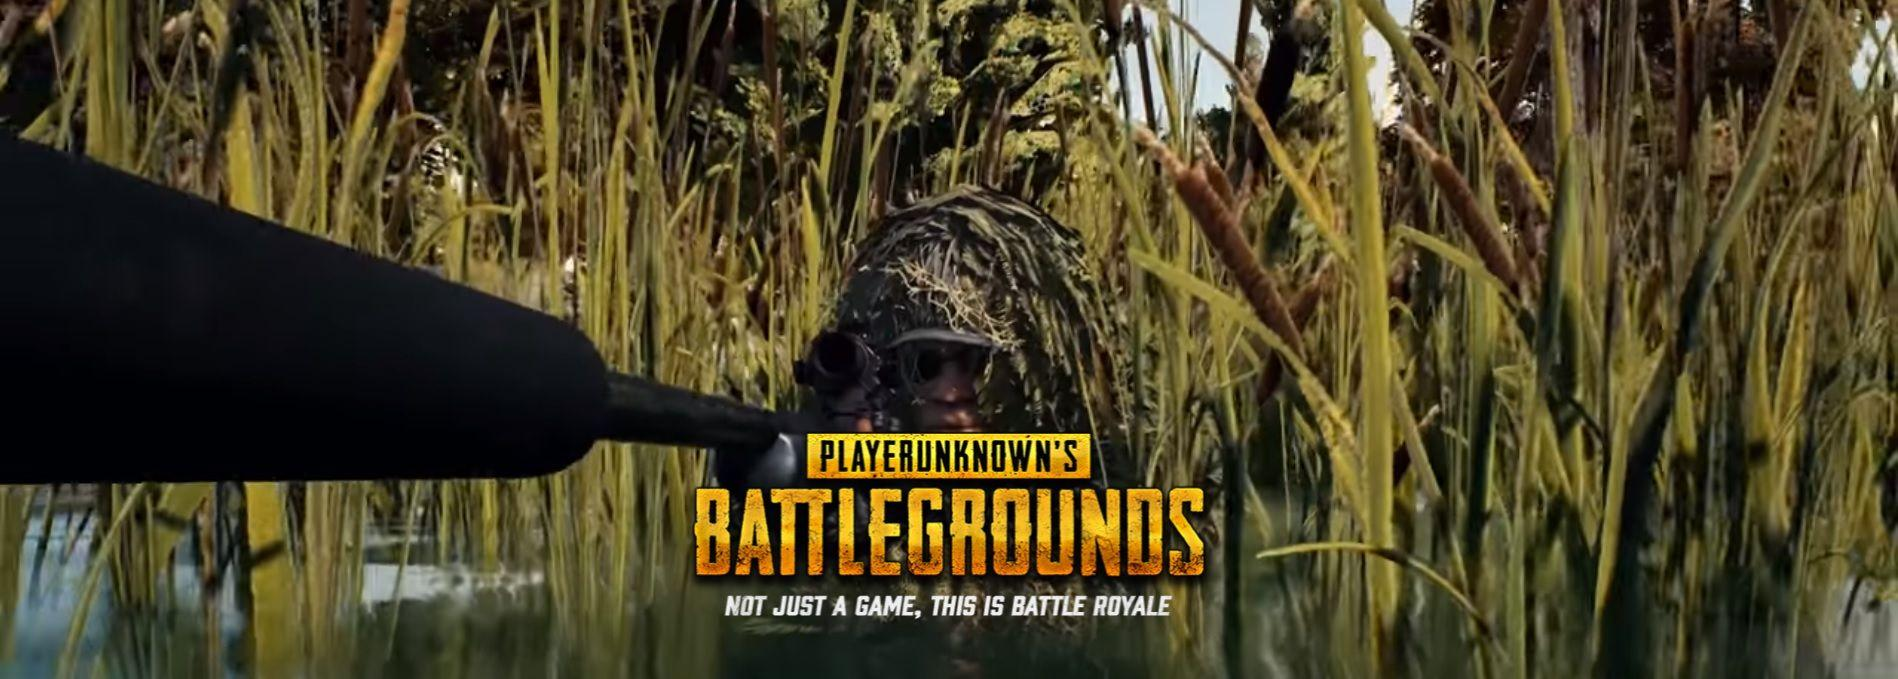 PLAYERUNKNOWN's BATTLEGROUNDS Review: Old Idea, Fresh Take